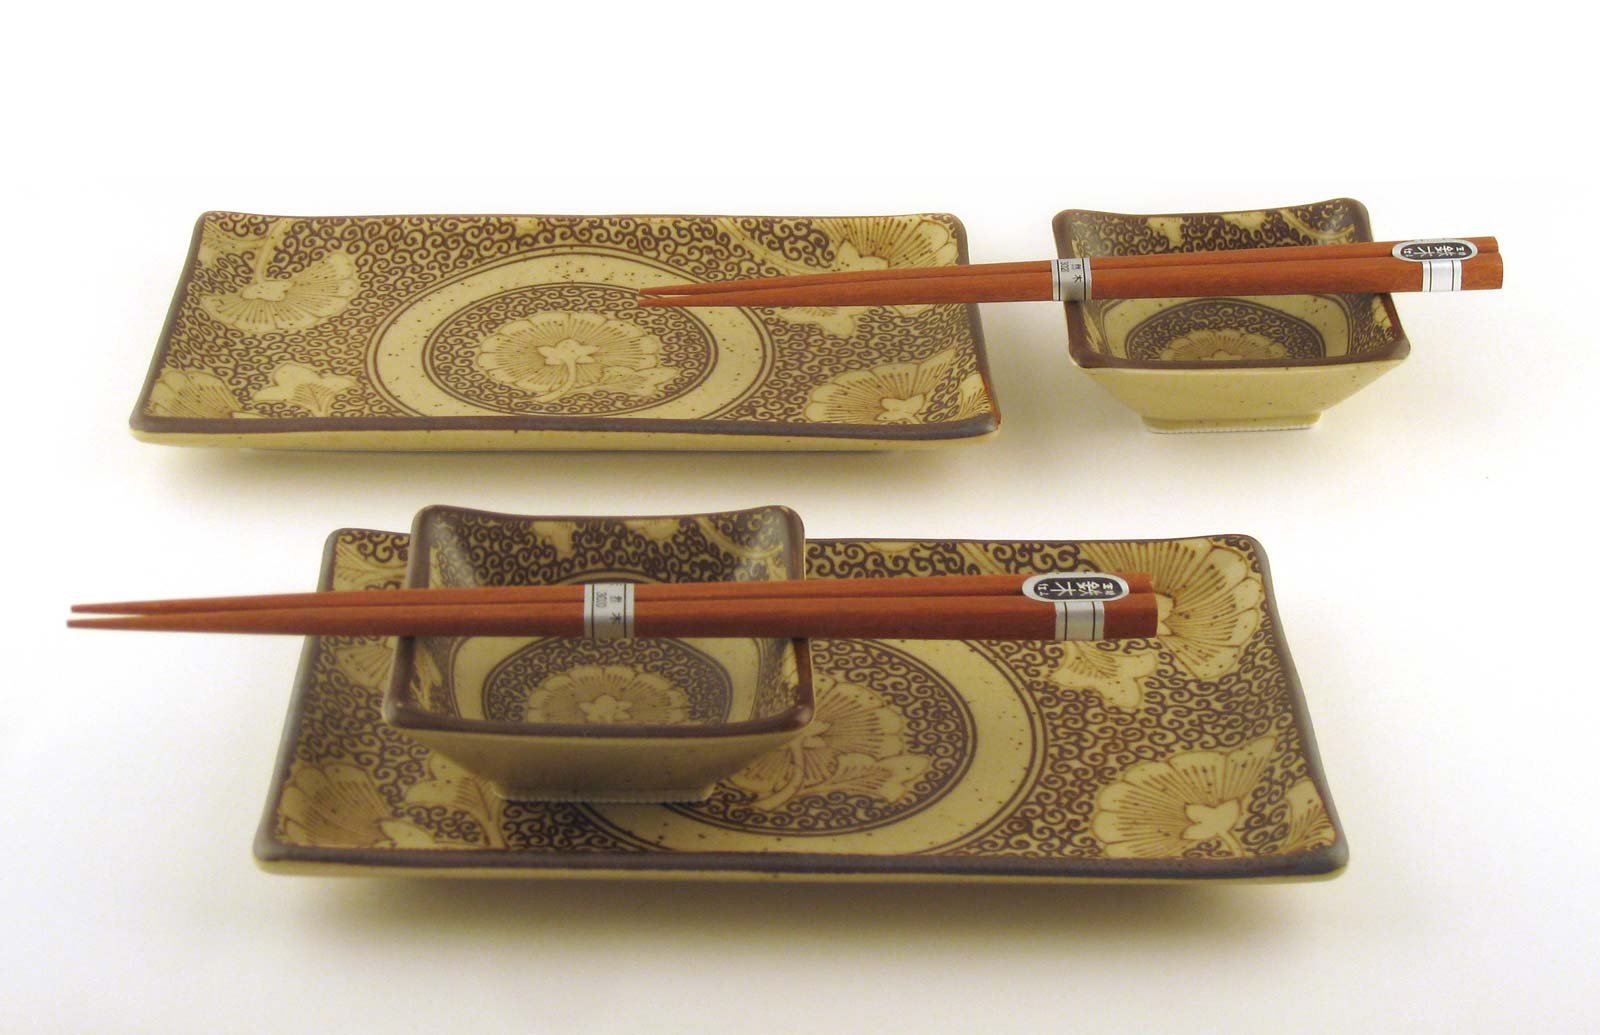 Japanese Sushi Tray Set for Two with Chopsticks, Sepia Gingko